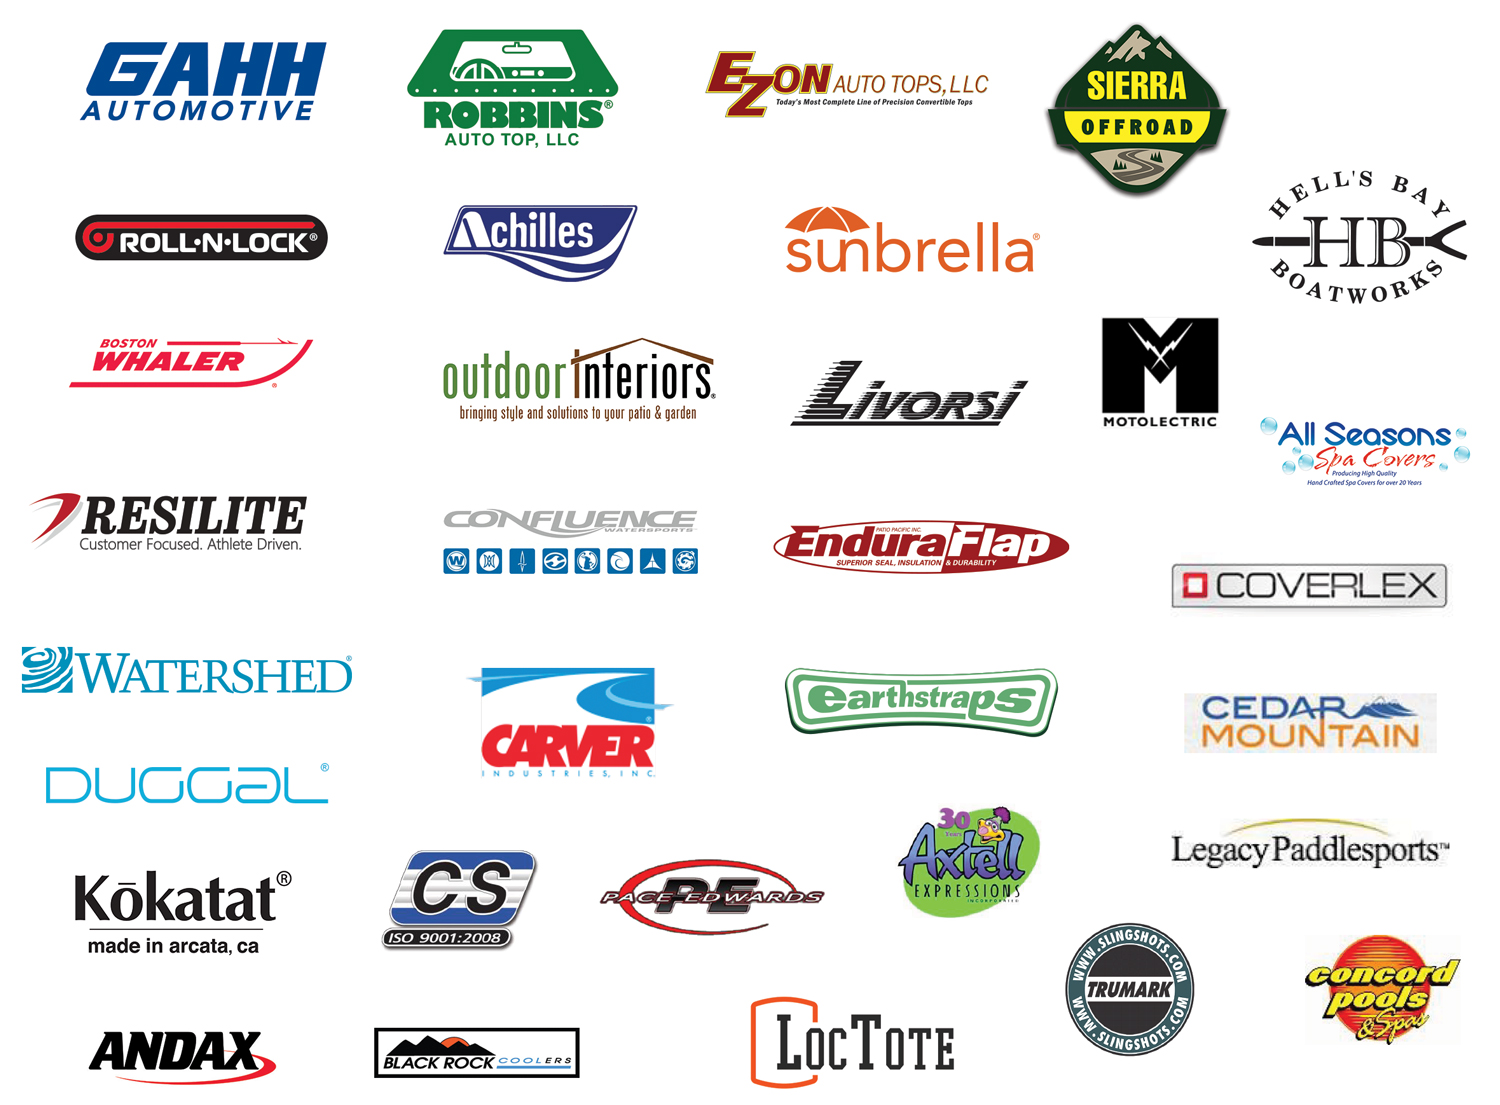 These fine companies, and many others, recommend 303 products to their customers.